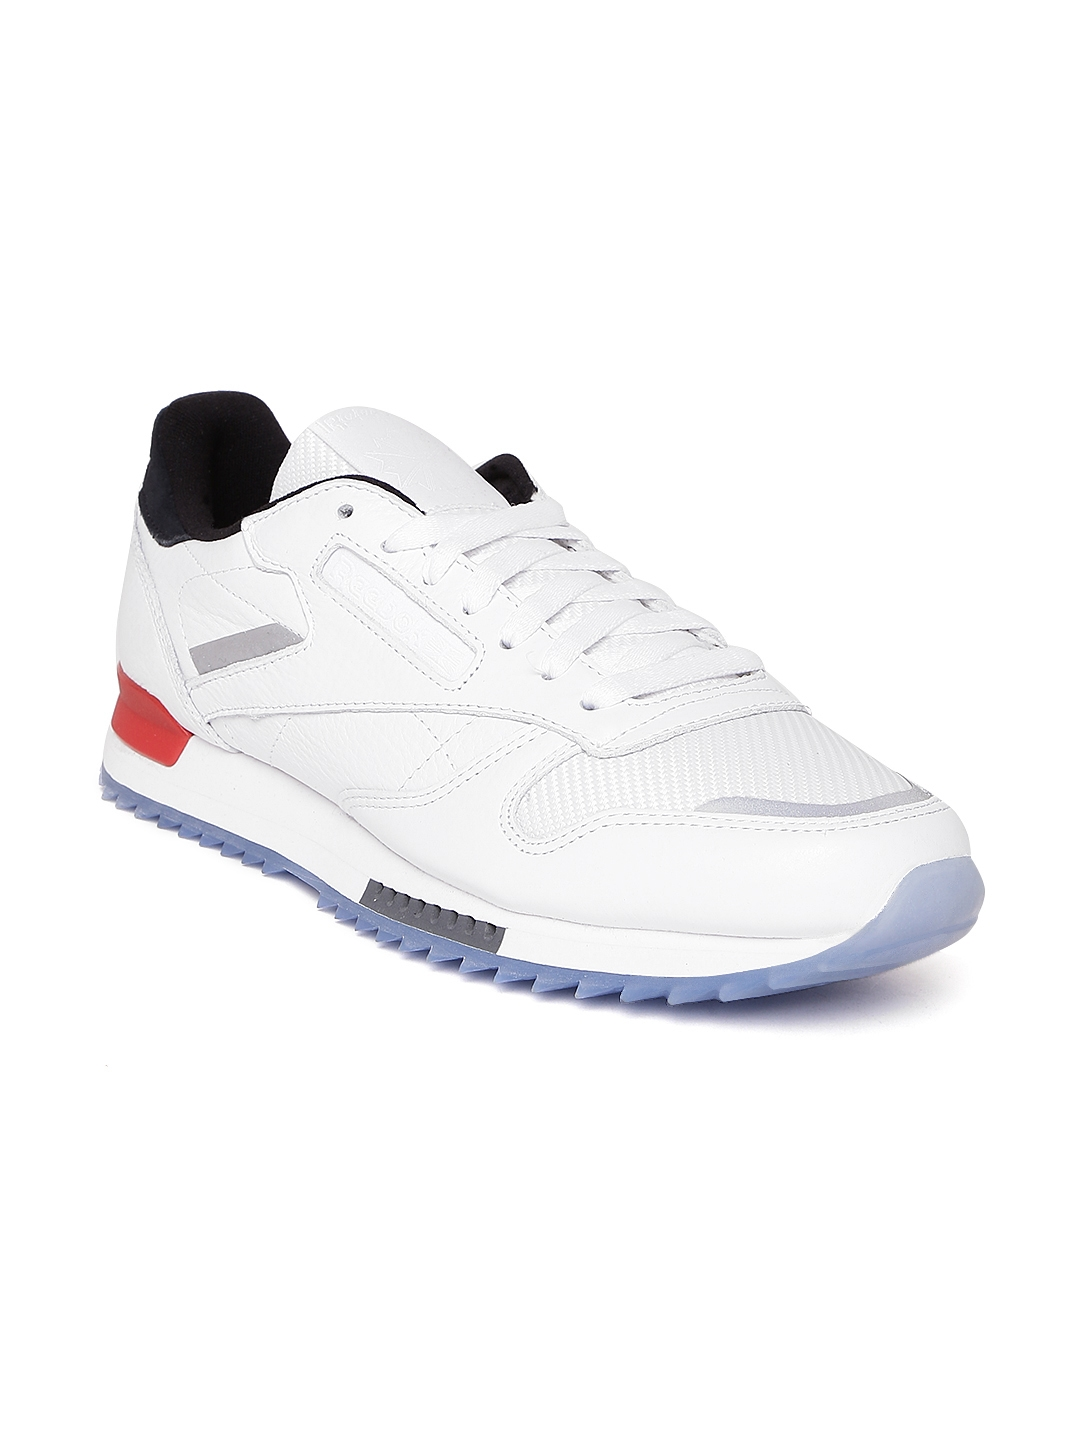 ee9ee8e49c61c8 Buy Reebok Classic Men White CL Leather Ripple BP Sneakers - Casual ...